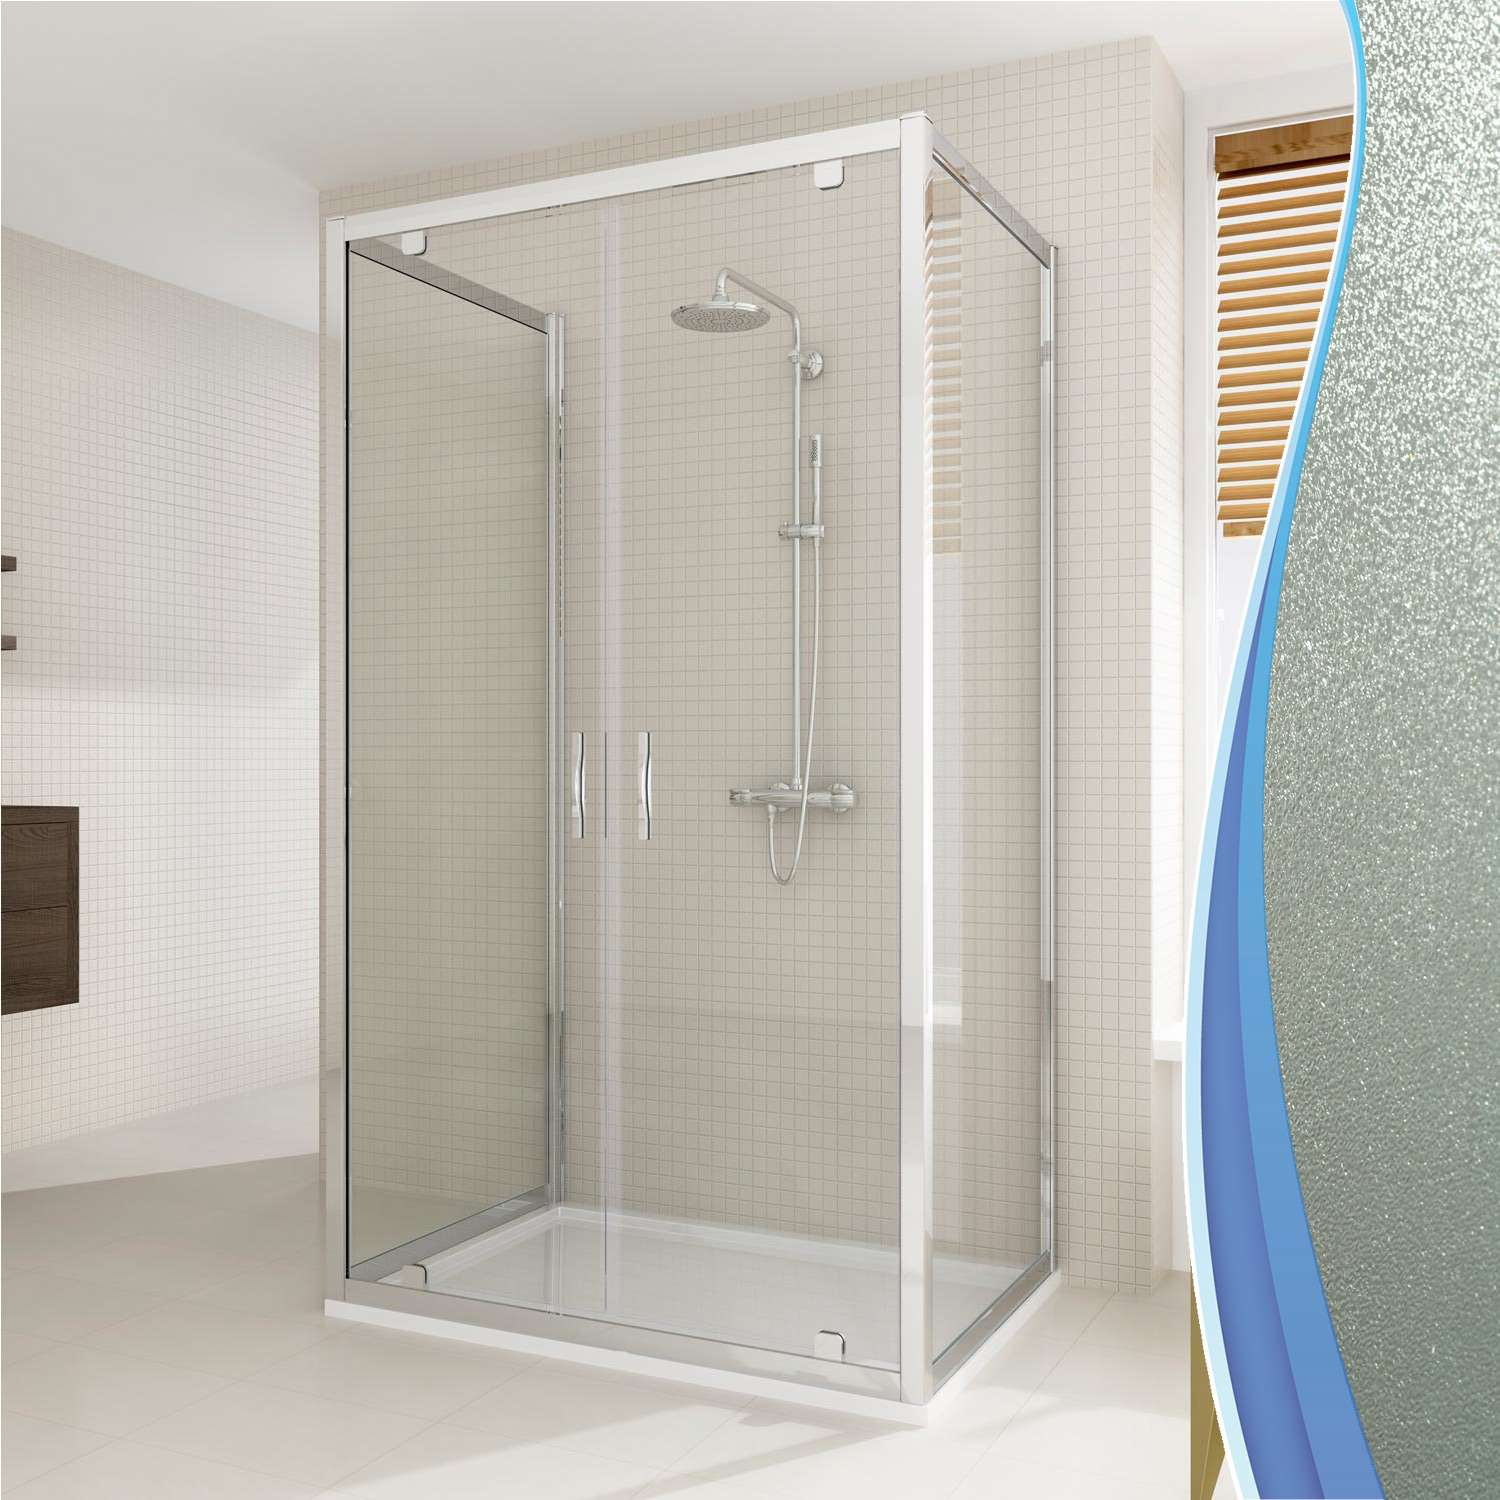 cabine de douche 80x130x80 cm 3 c t s 2 portes pivotante verre opaque ebay. Black Bedroom Furniture Sets. Home Design Ideas